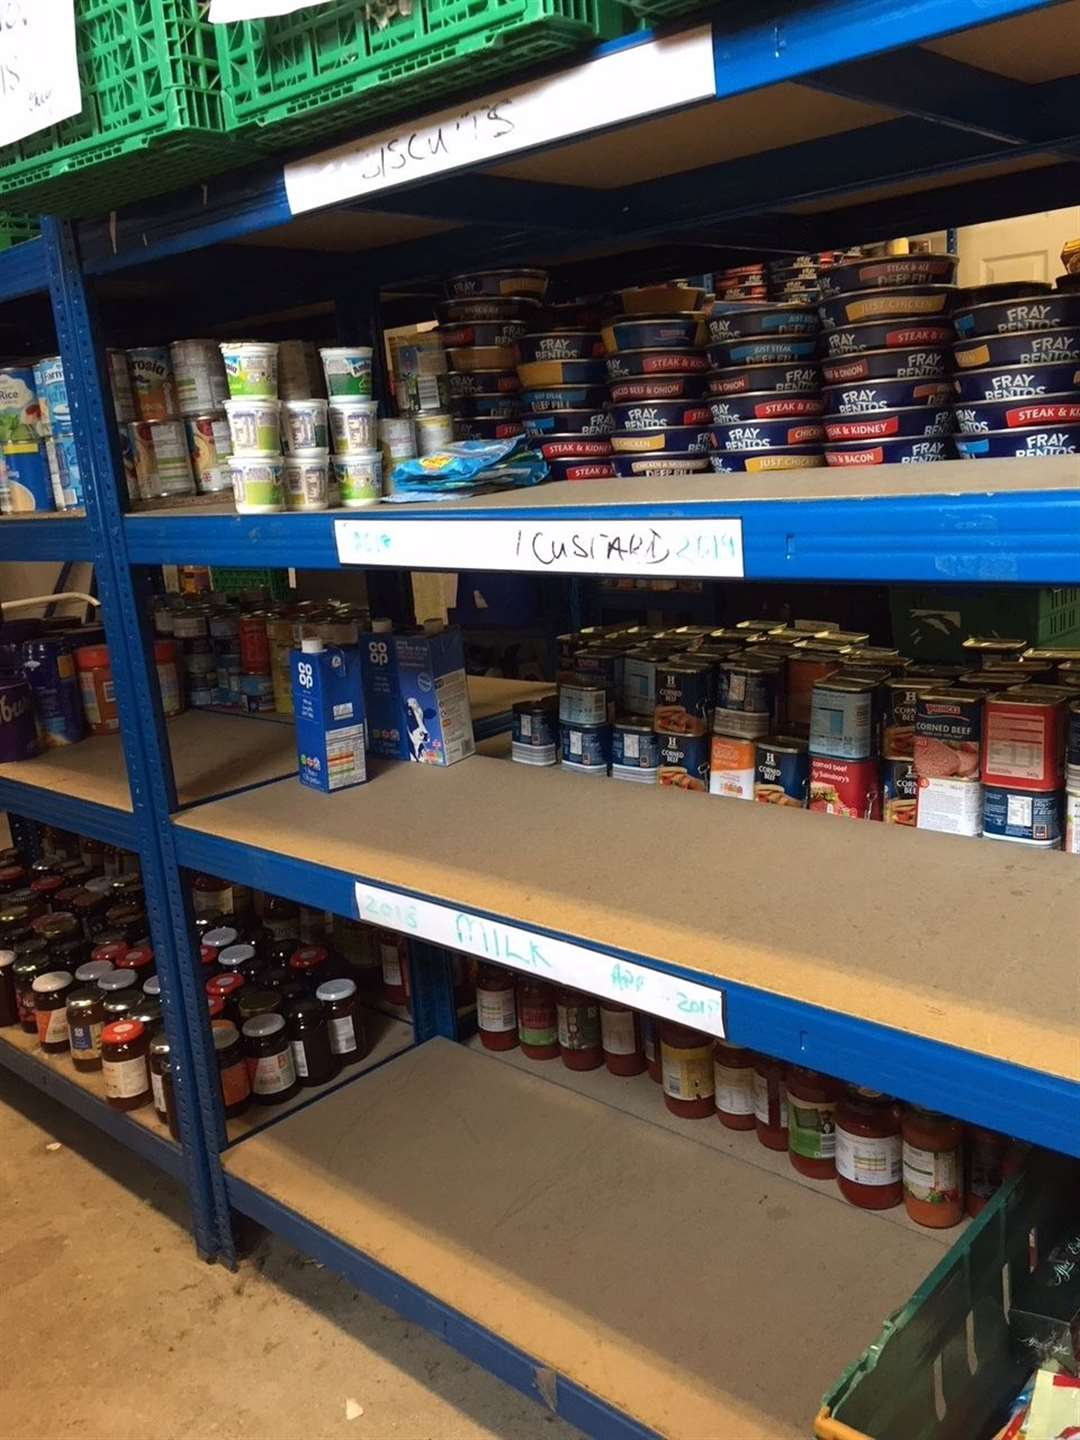 Bare shelves at the Foodbank warehouse in Deal from last year's shortages